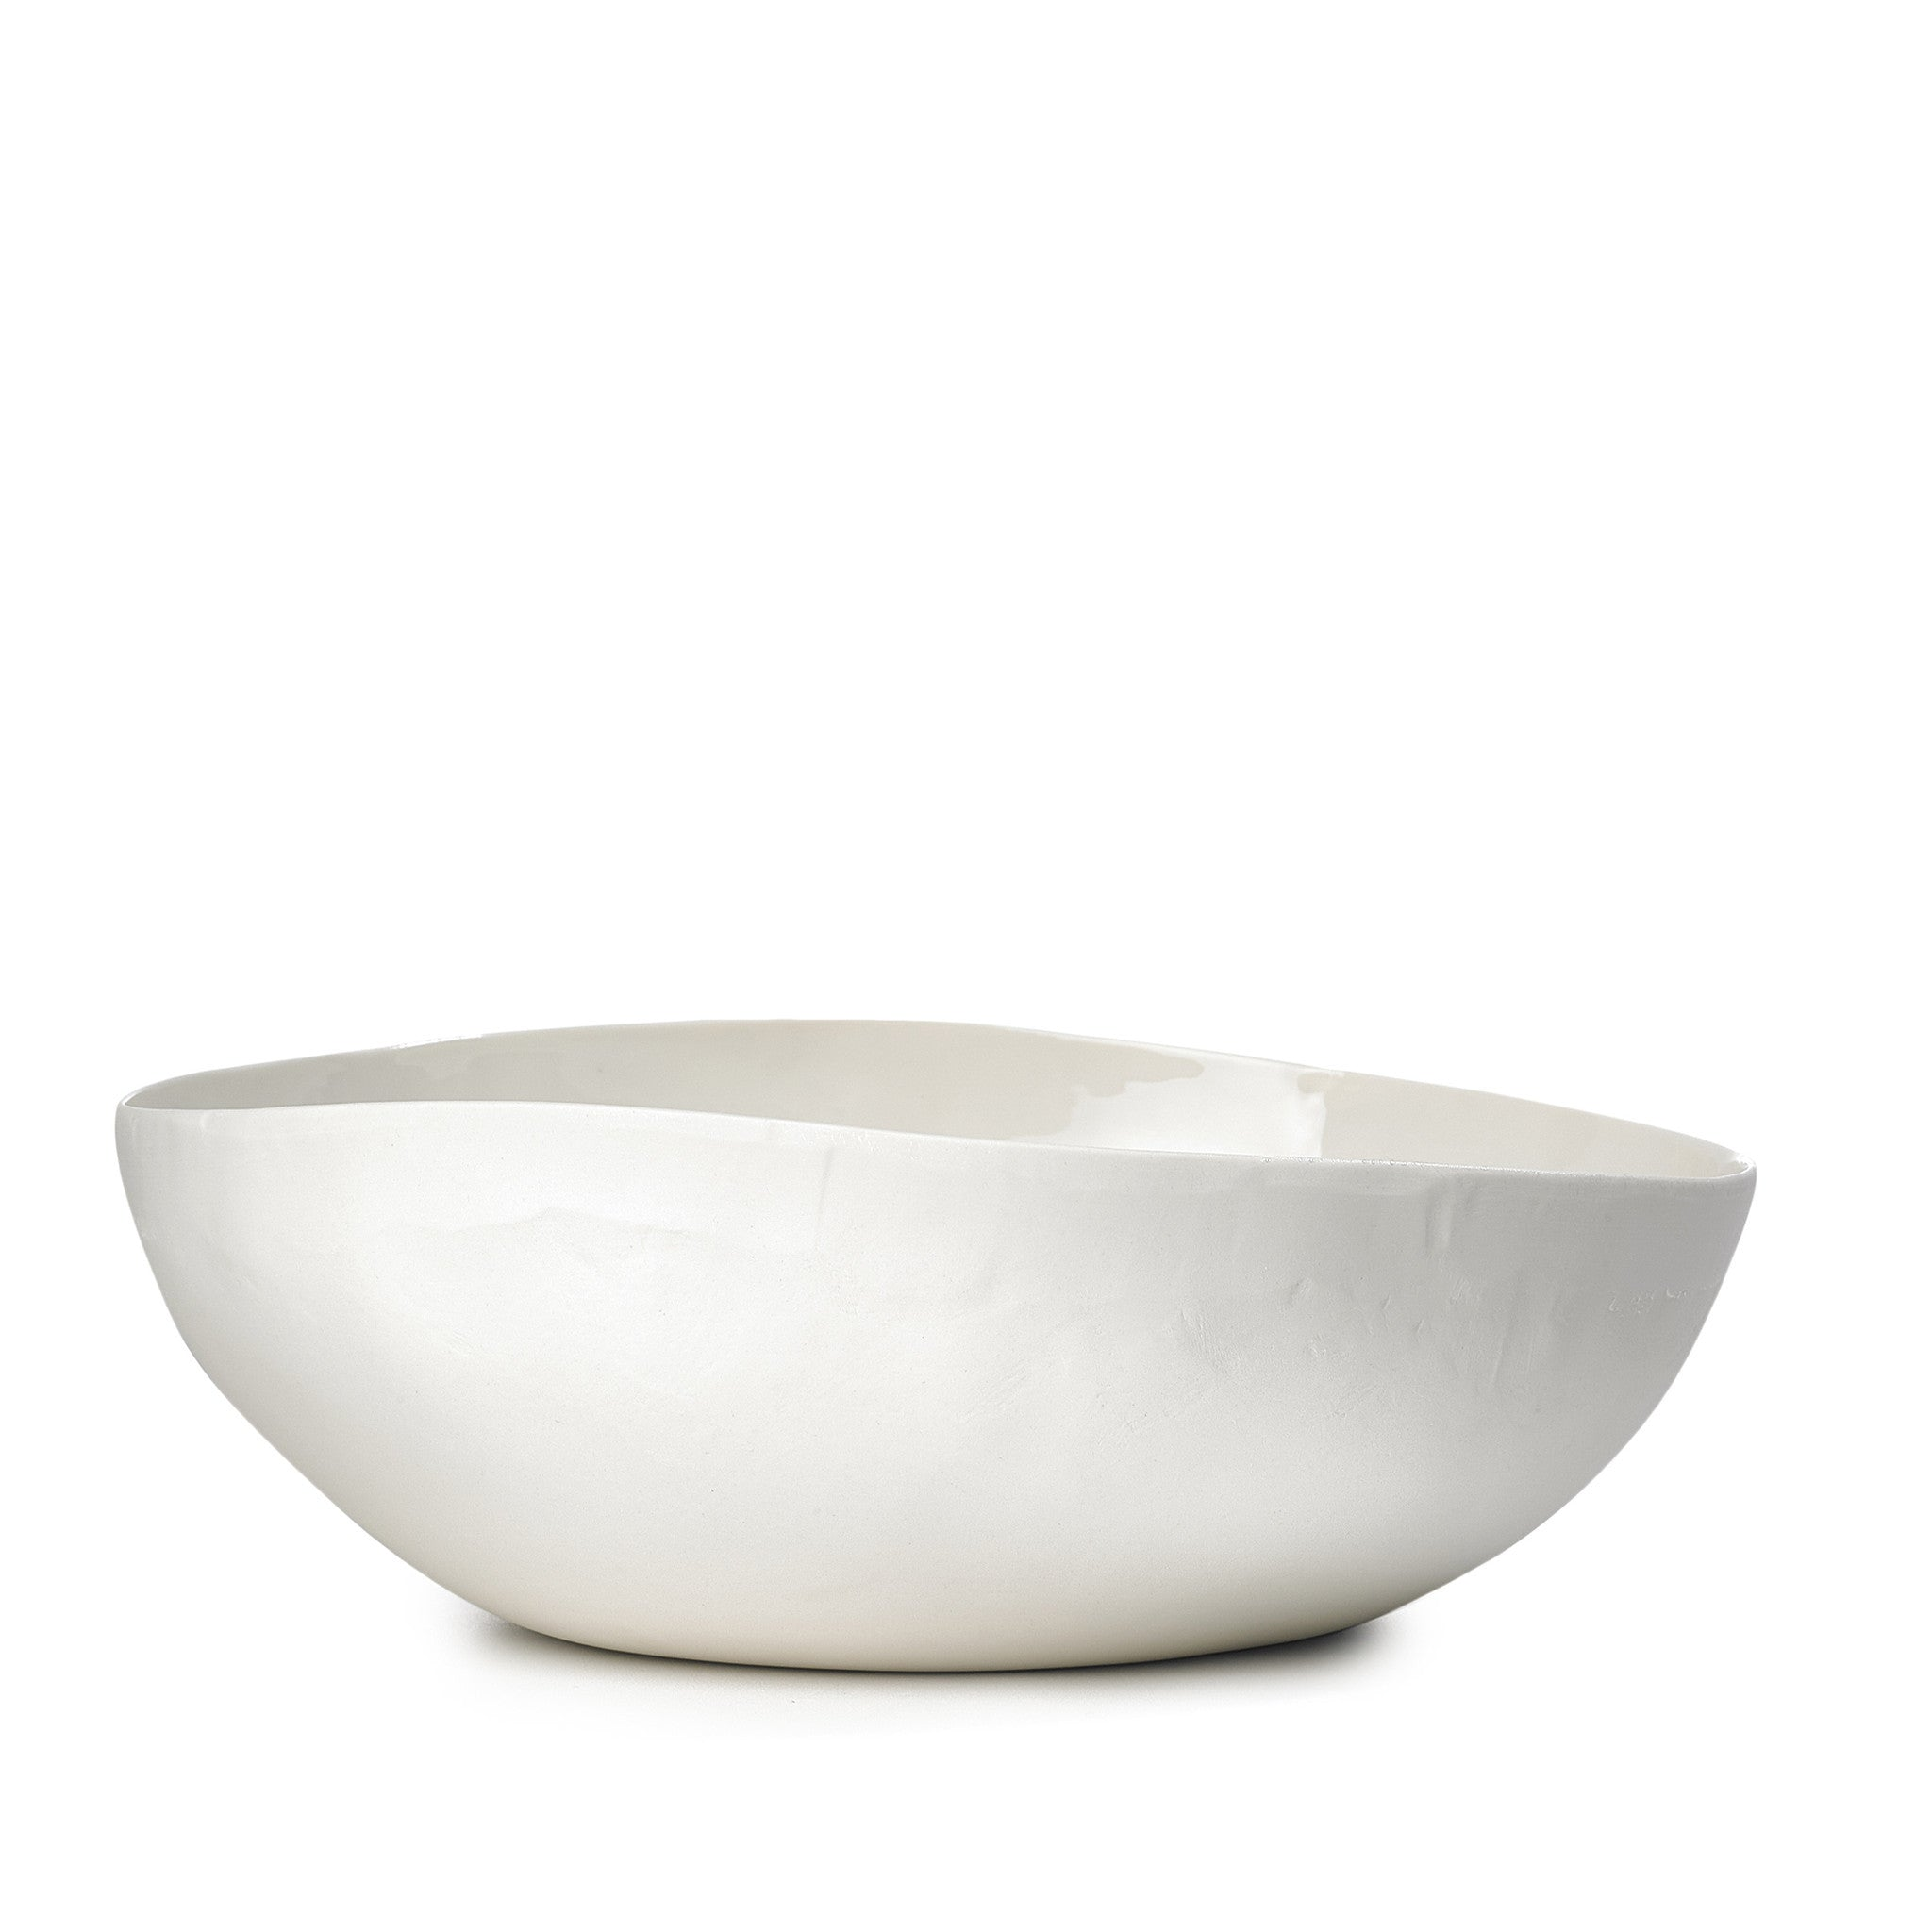 S&B Handmade 30cm Porcelain Medium Salad Bowl with Plain Rim